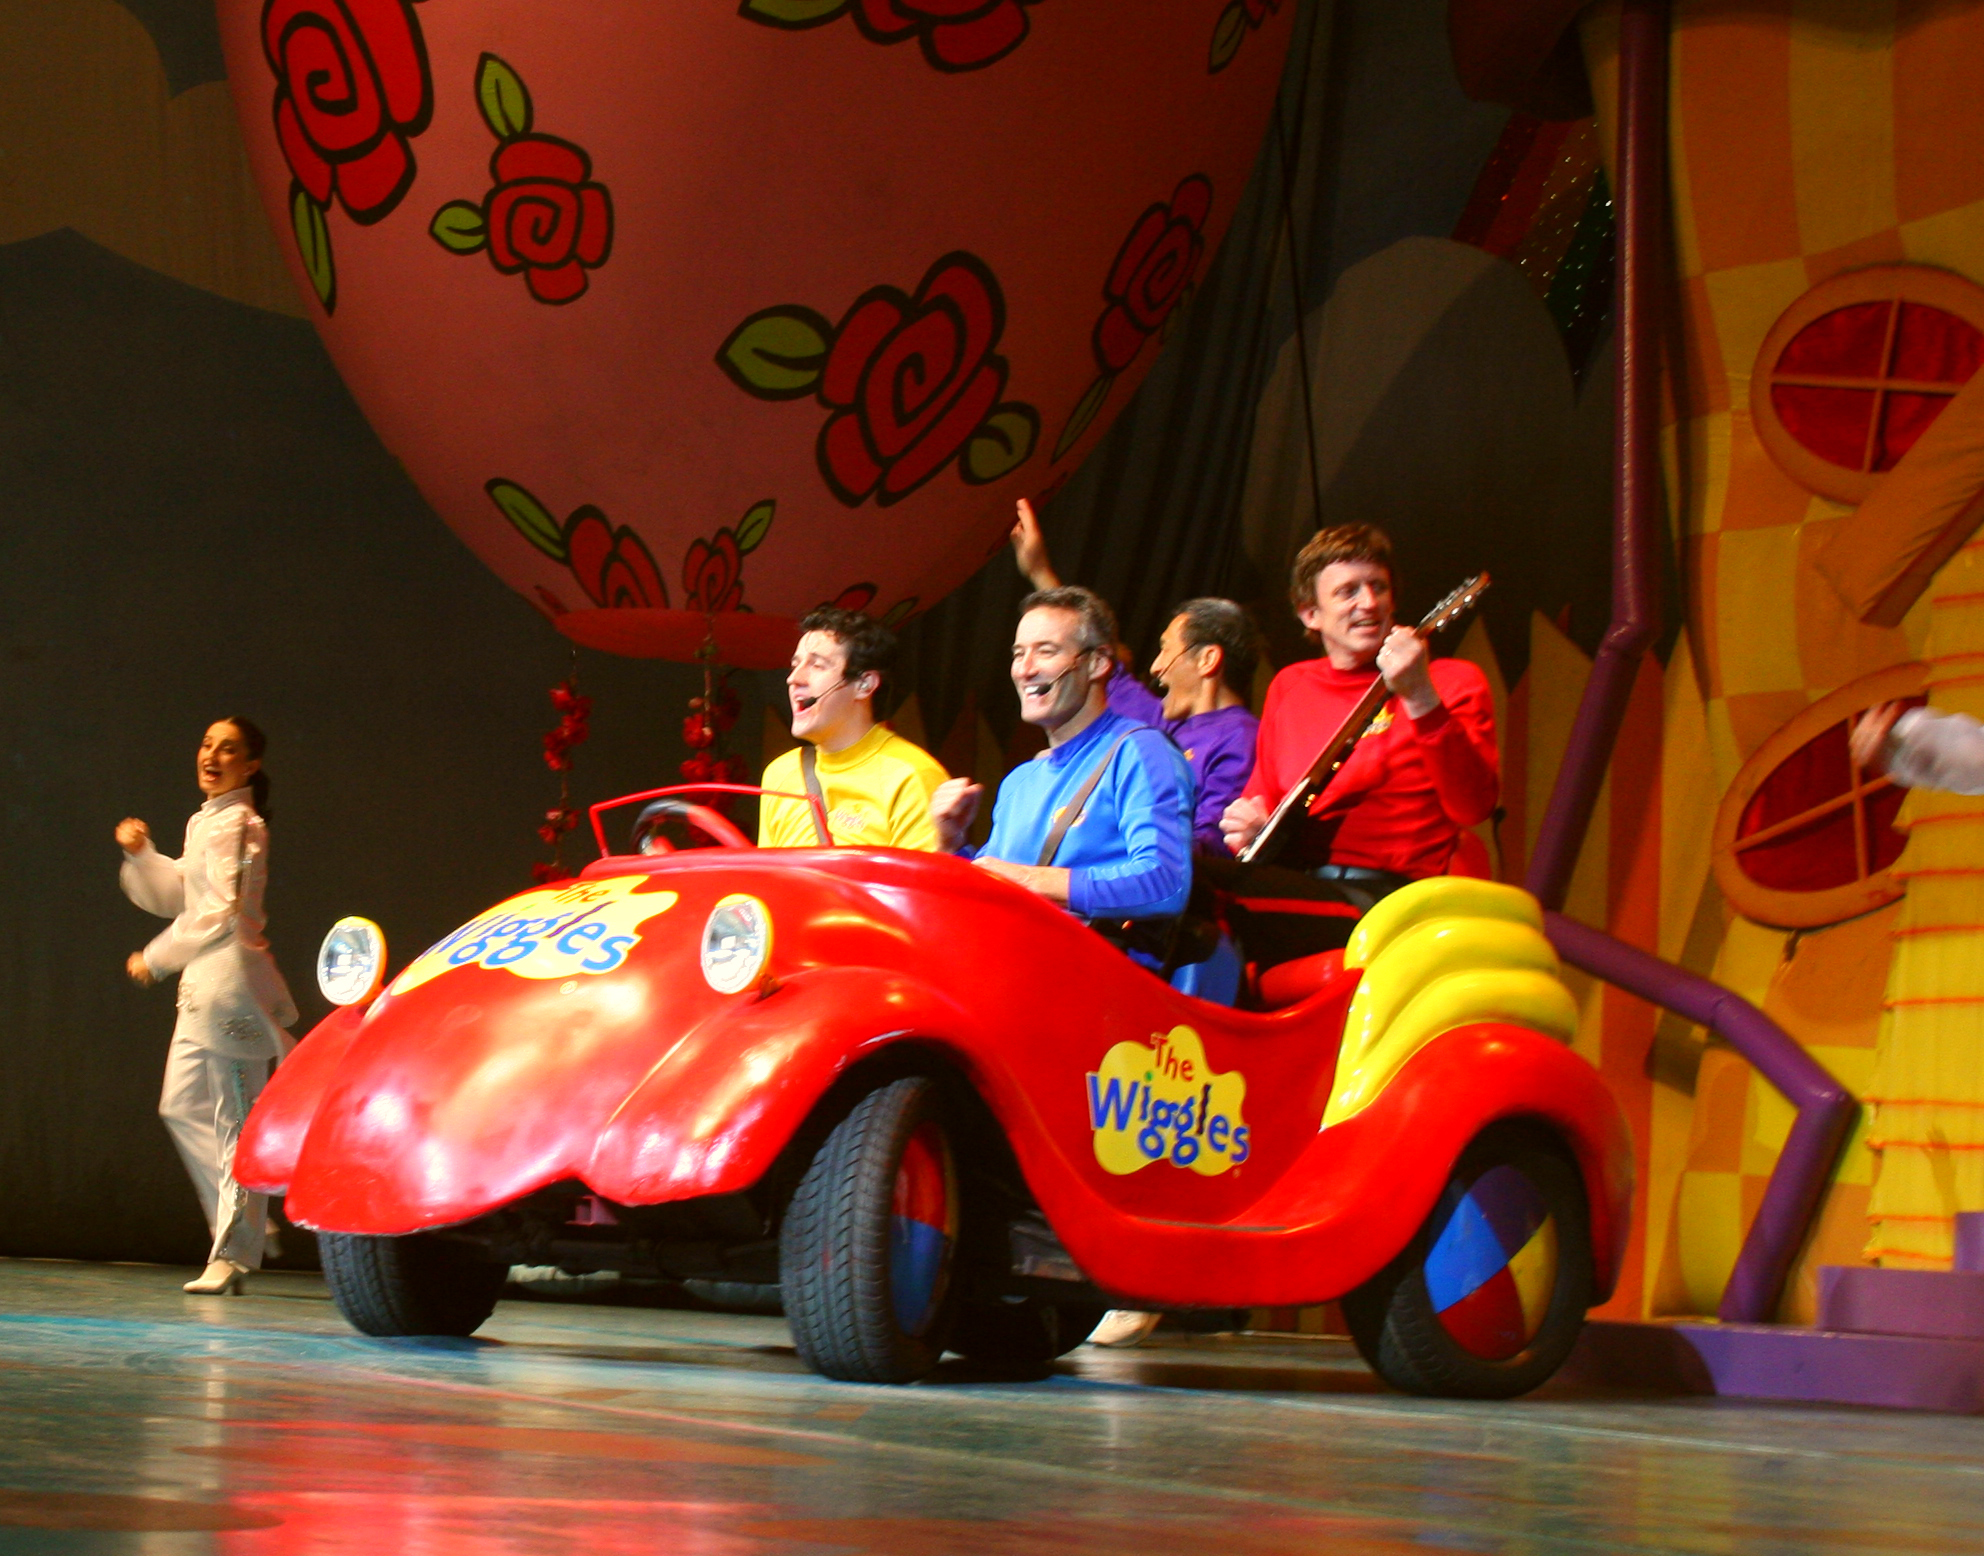 The Wiggles Big Red Car Wags The Dog